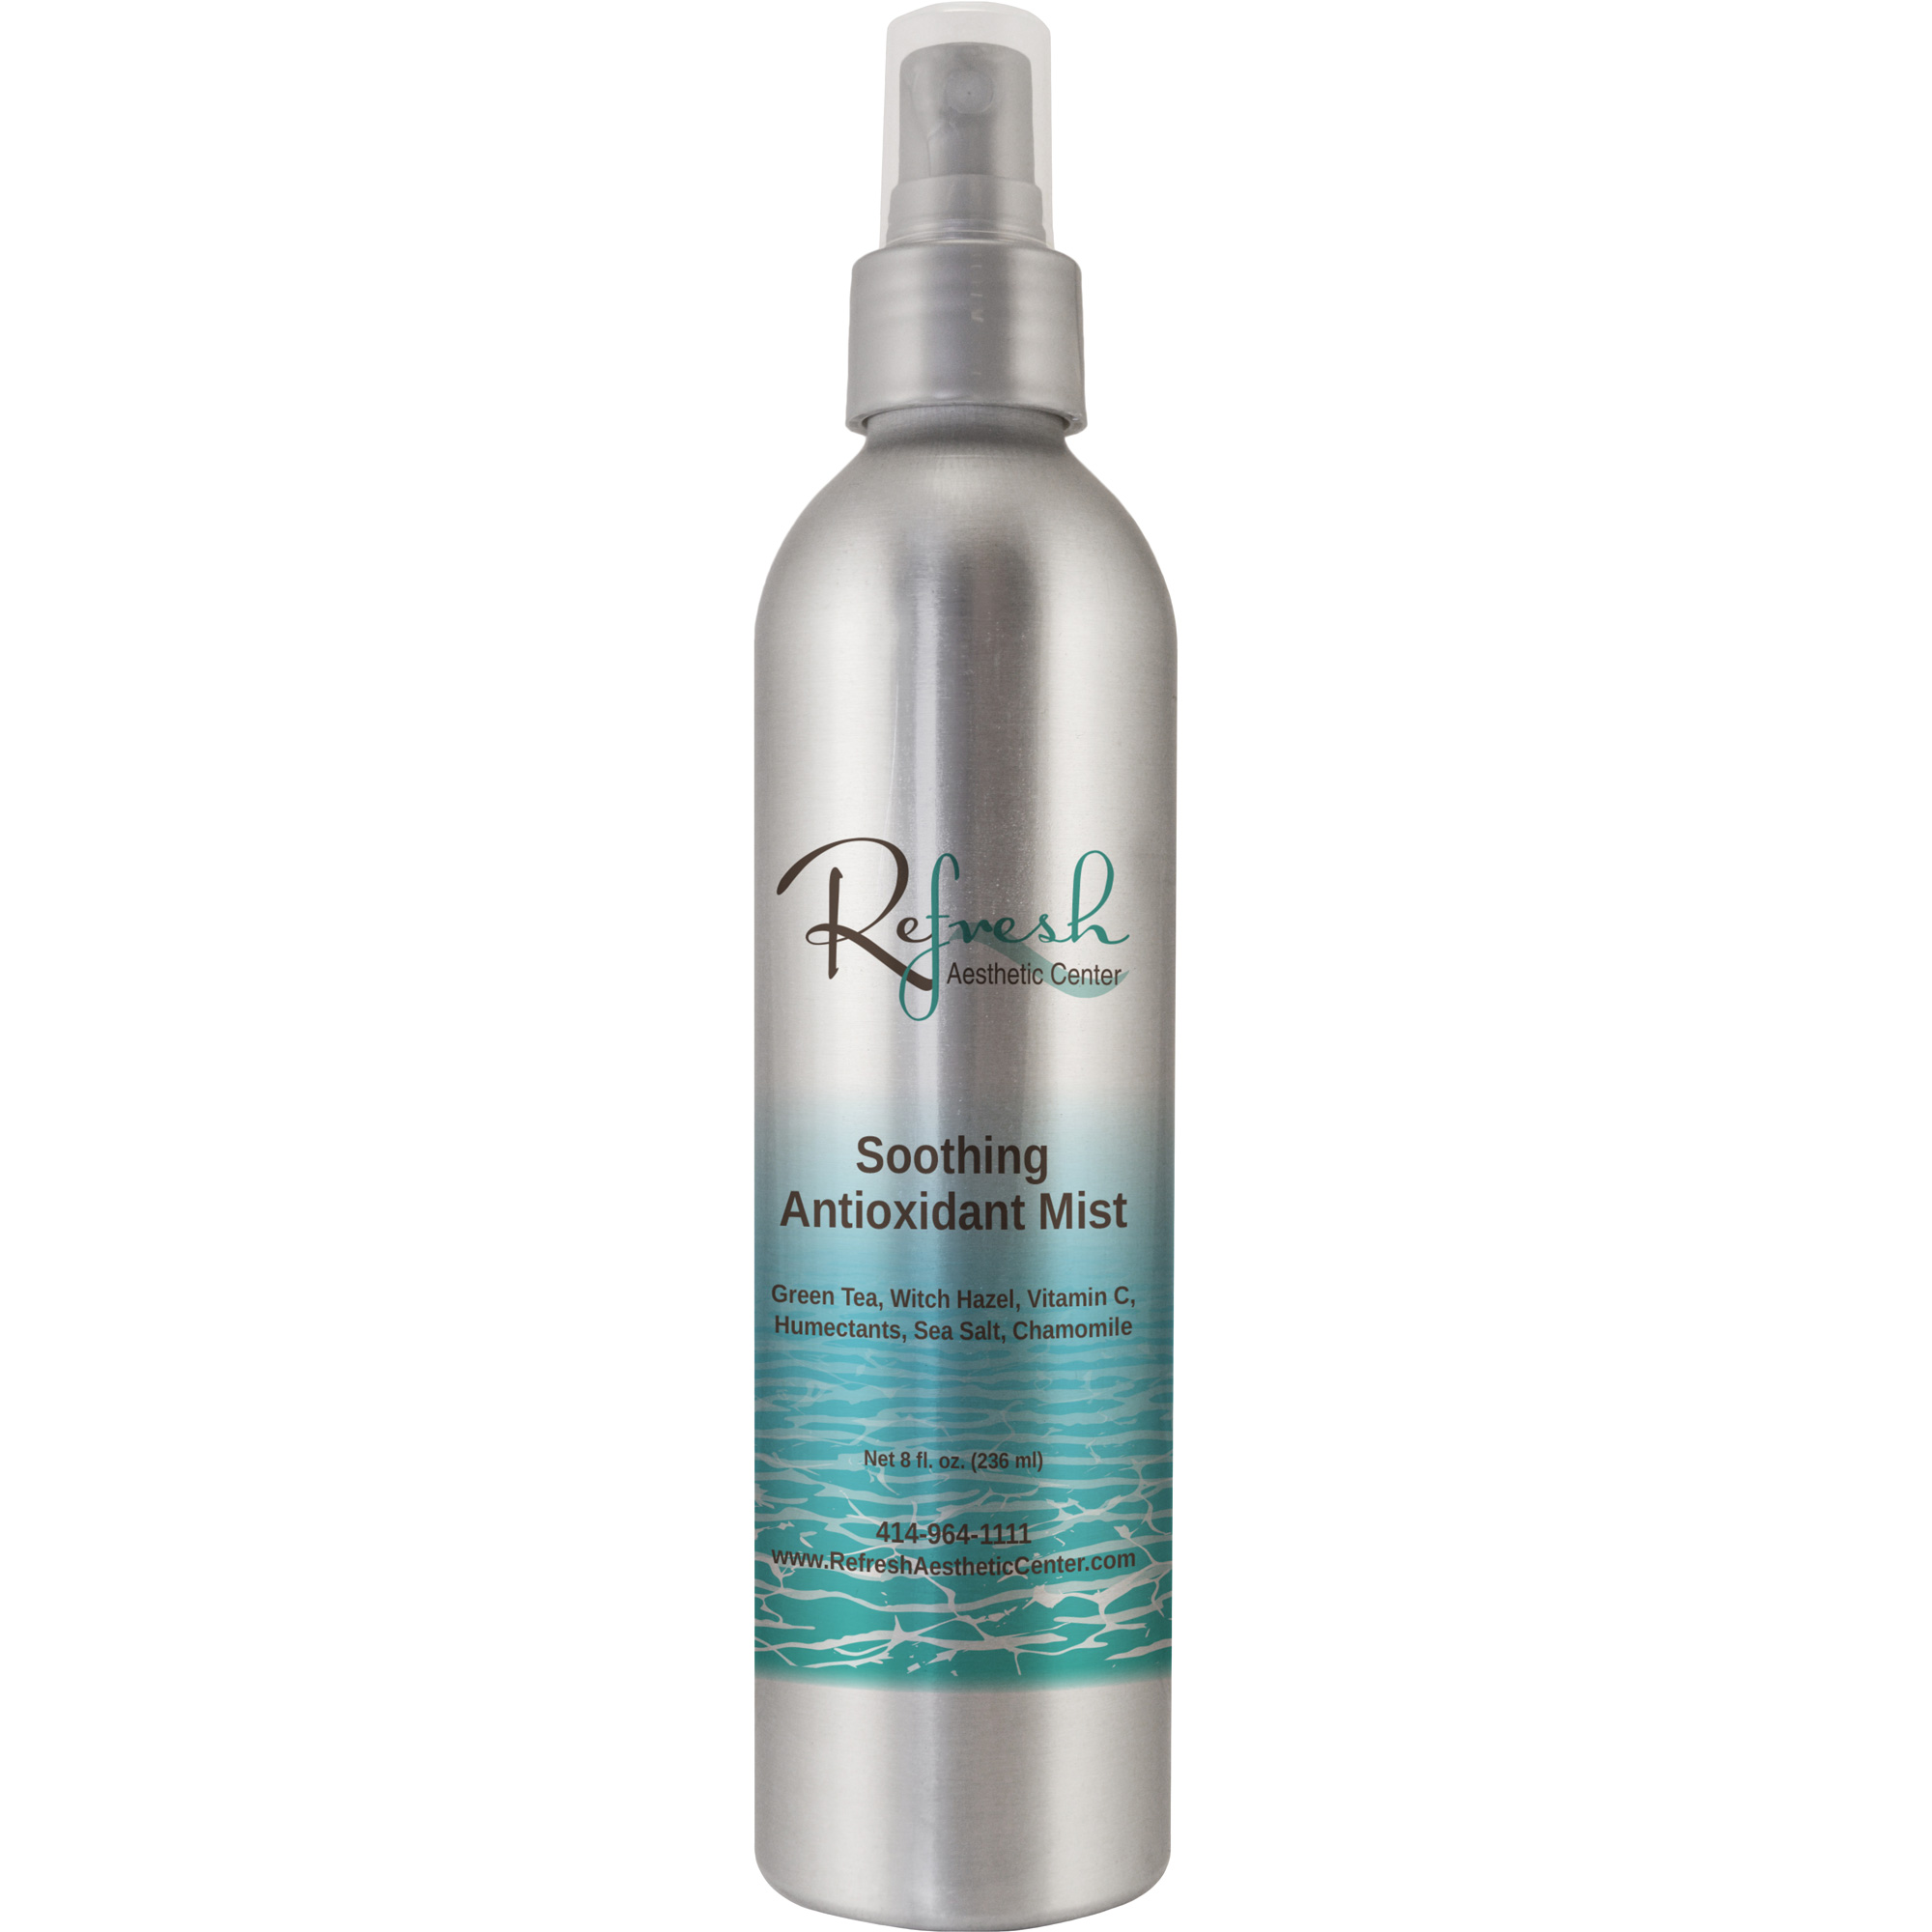 ReFresh Soothing Antioxidant Mist for Face and Body